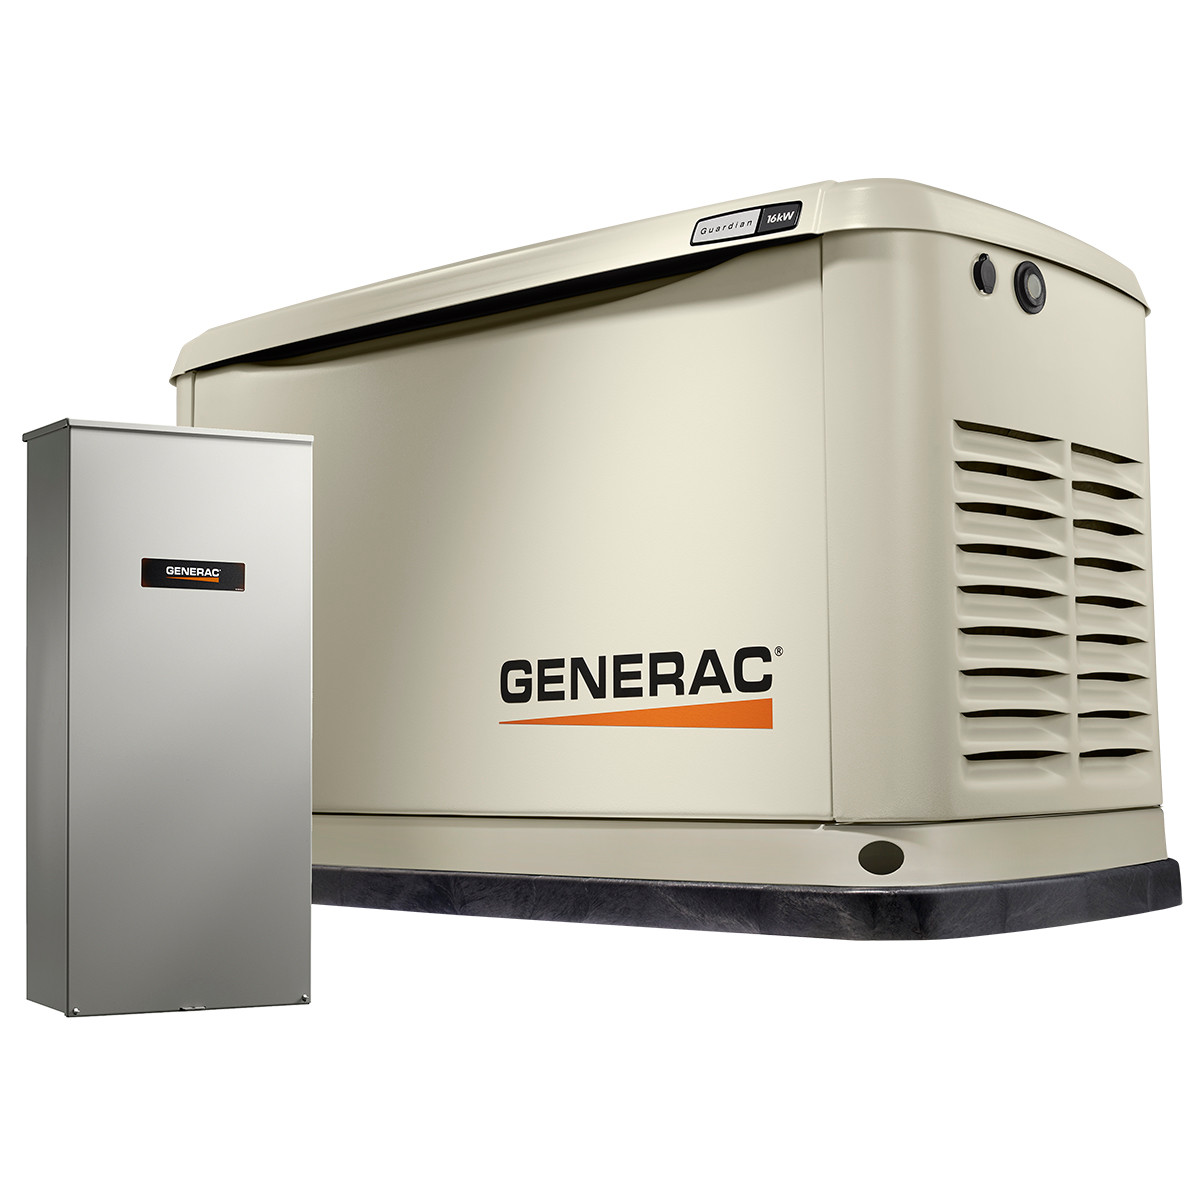 Generac 70371 | 16kW Guardian Generator with Wi-Fi | 200A SE ... on well pressure tank plumbing diagram, well pressure switch diagram, oil pumps for thermoregulators, oil pressure sending unit wiring, oil pressure sensor diagram, oil relay switch, oil pump wiring diagram, oil light wiring diagram, 2 prong pressure switch diagram, oil burner wiring diagram, water pump pressure switch diagram, oil pressure switch sensor, oil temperature sensor 2007 dodge charger, oil sending unit location isuzu trooper, oil heater wiring diagram, oil pressure sender switch schematic, oil pressure troubleshooting, oil pressure switch connector, oil pump pressure gauge, oil pressure shut off switch,